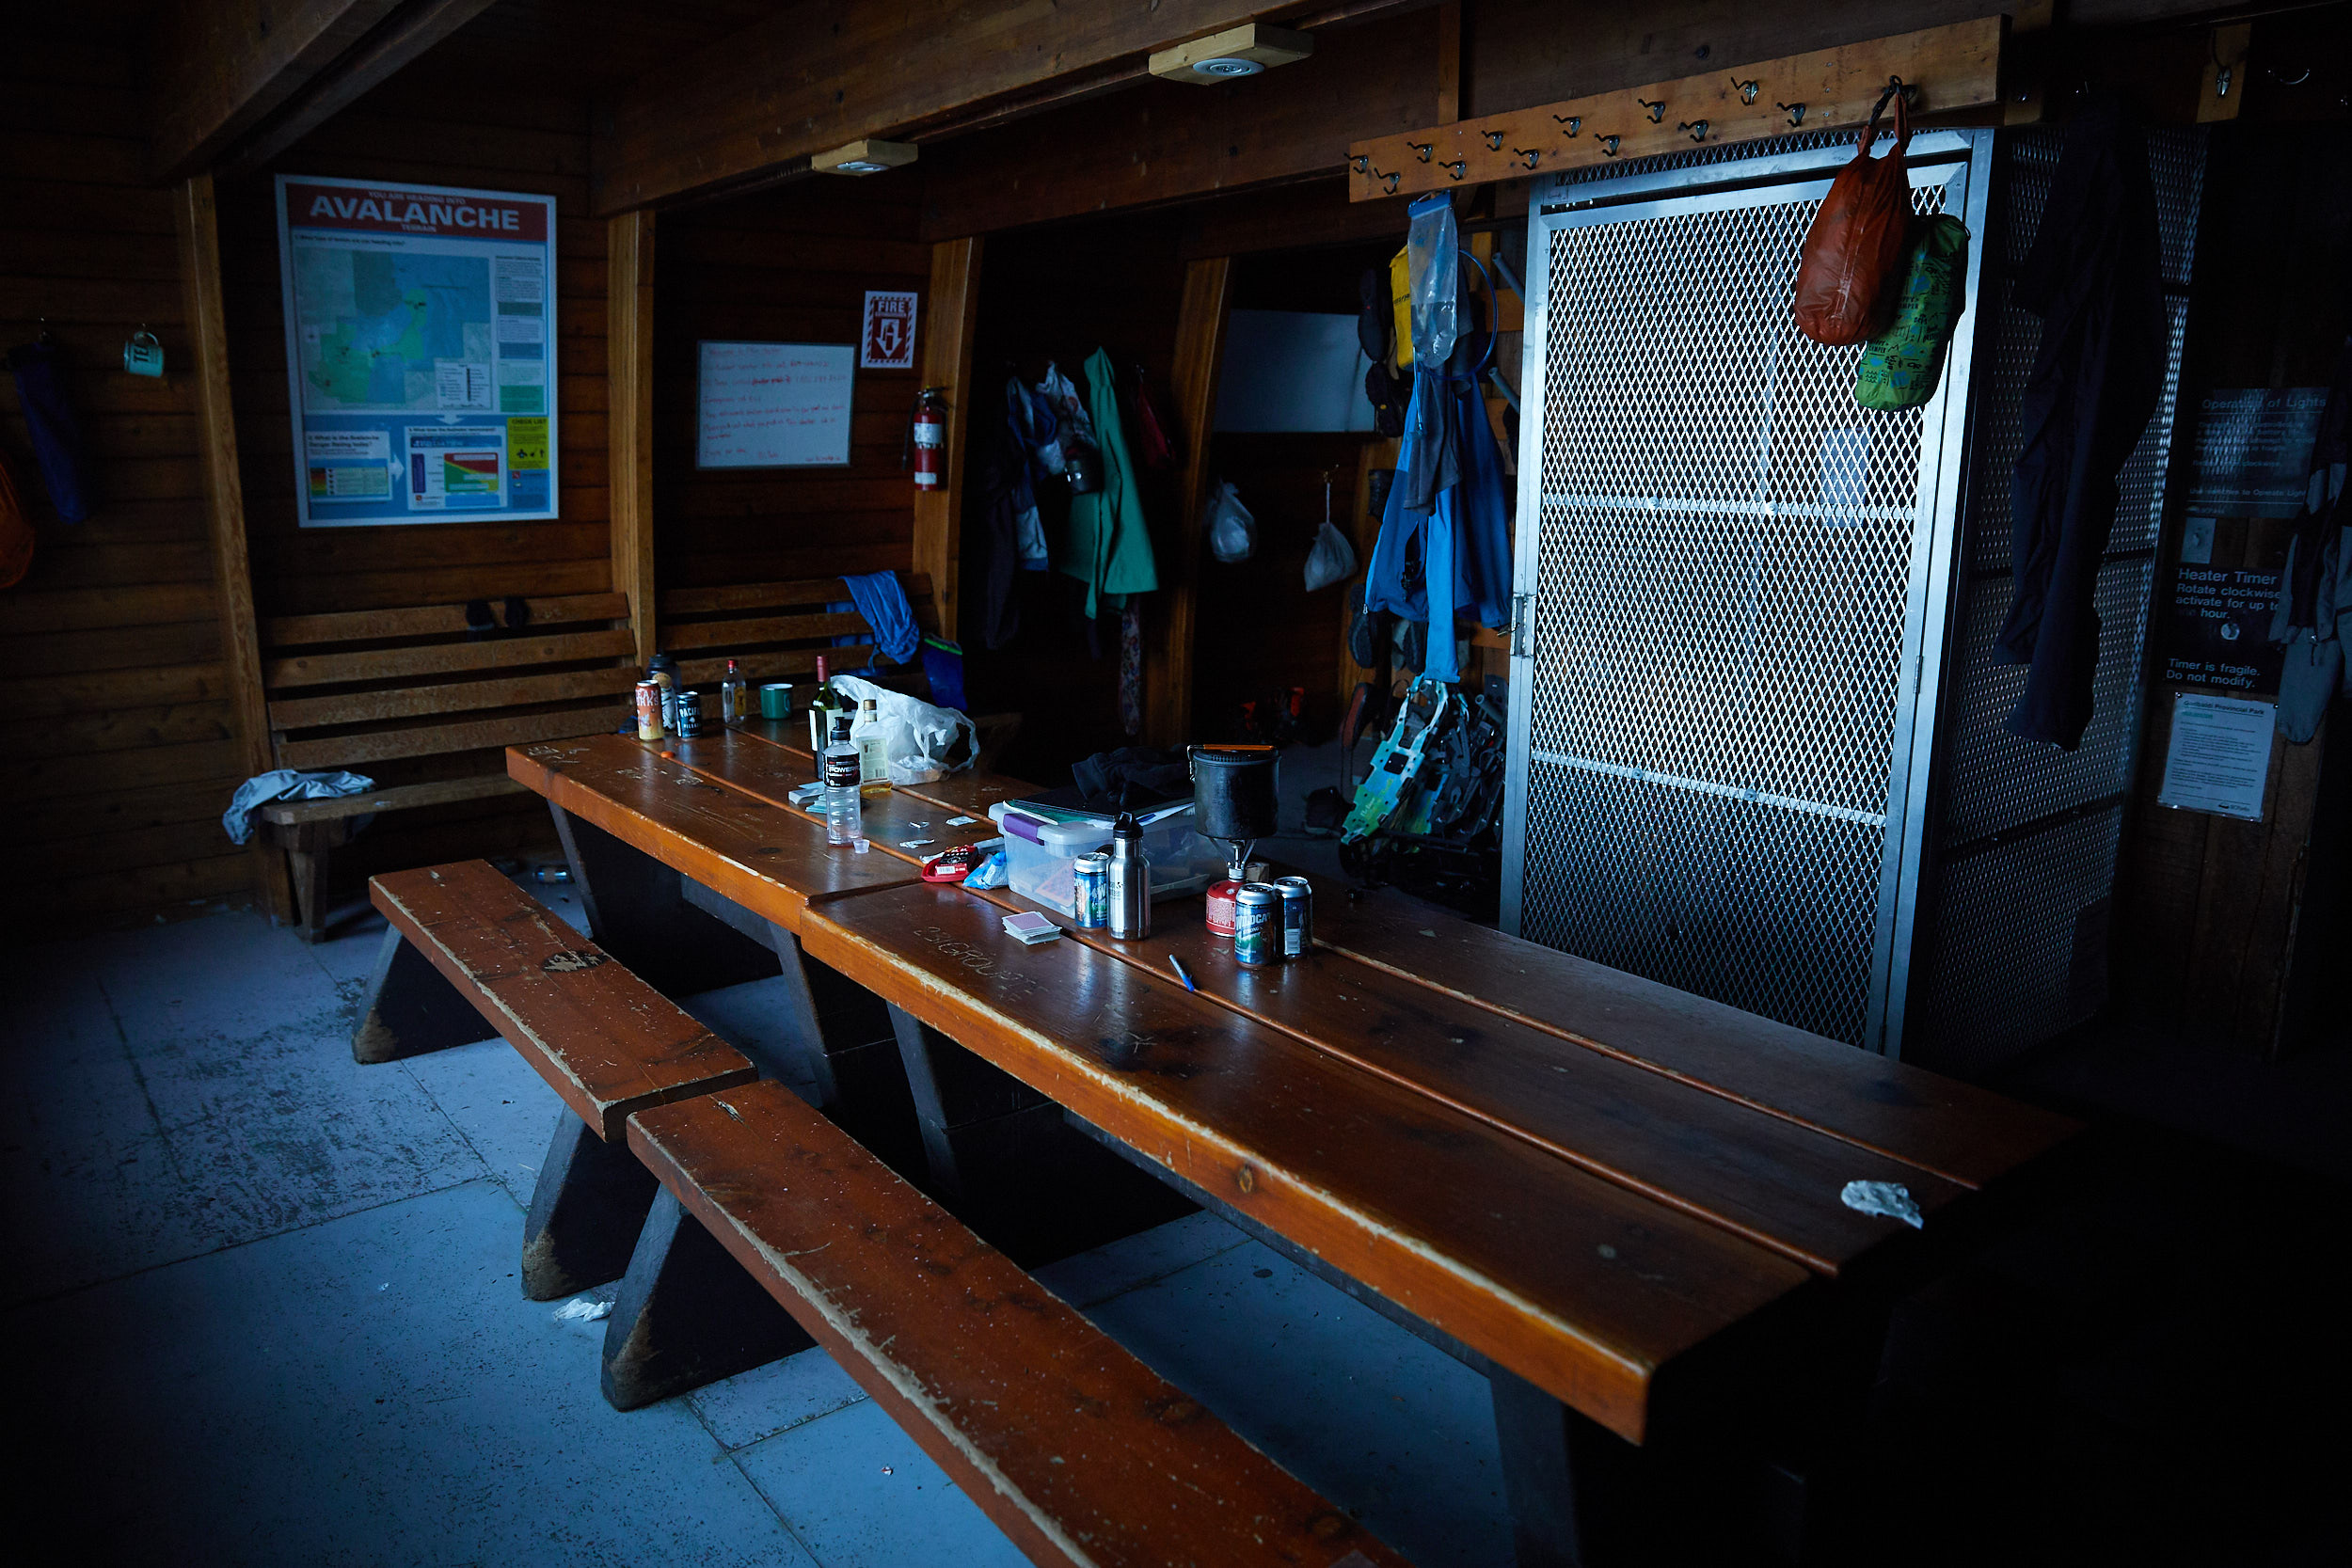 The hut has ample seating and tables for cooking and playing games.